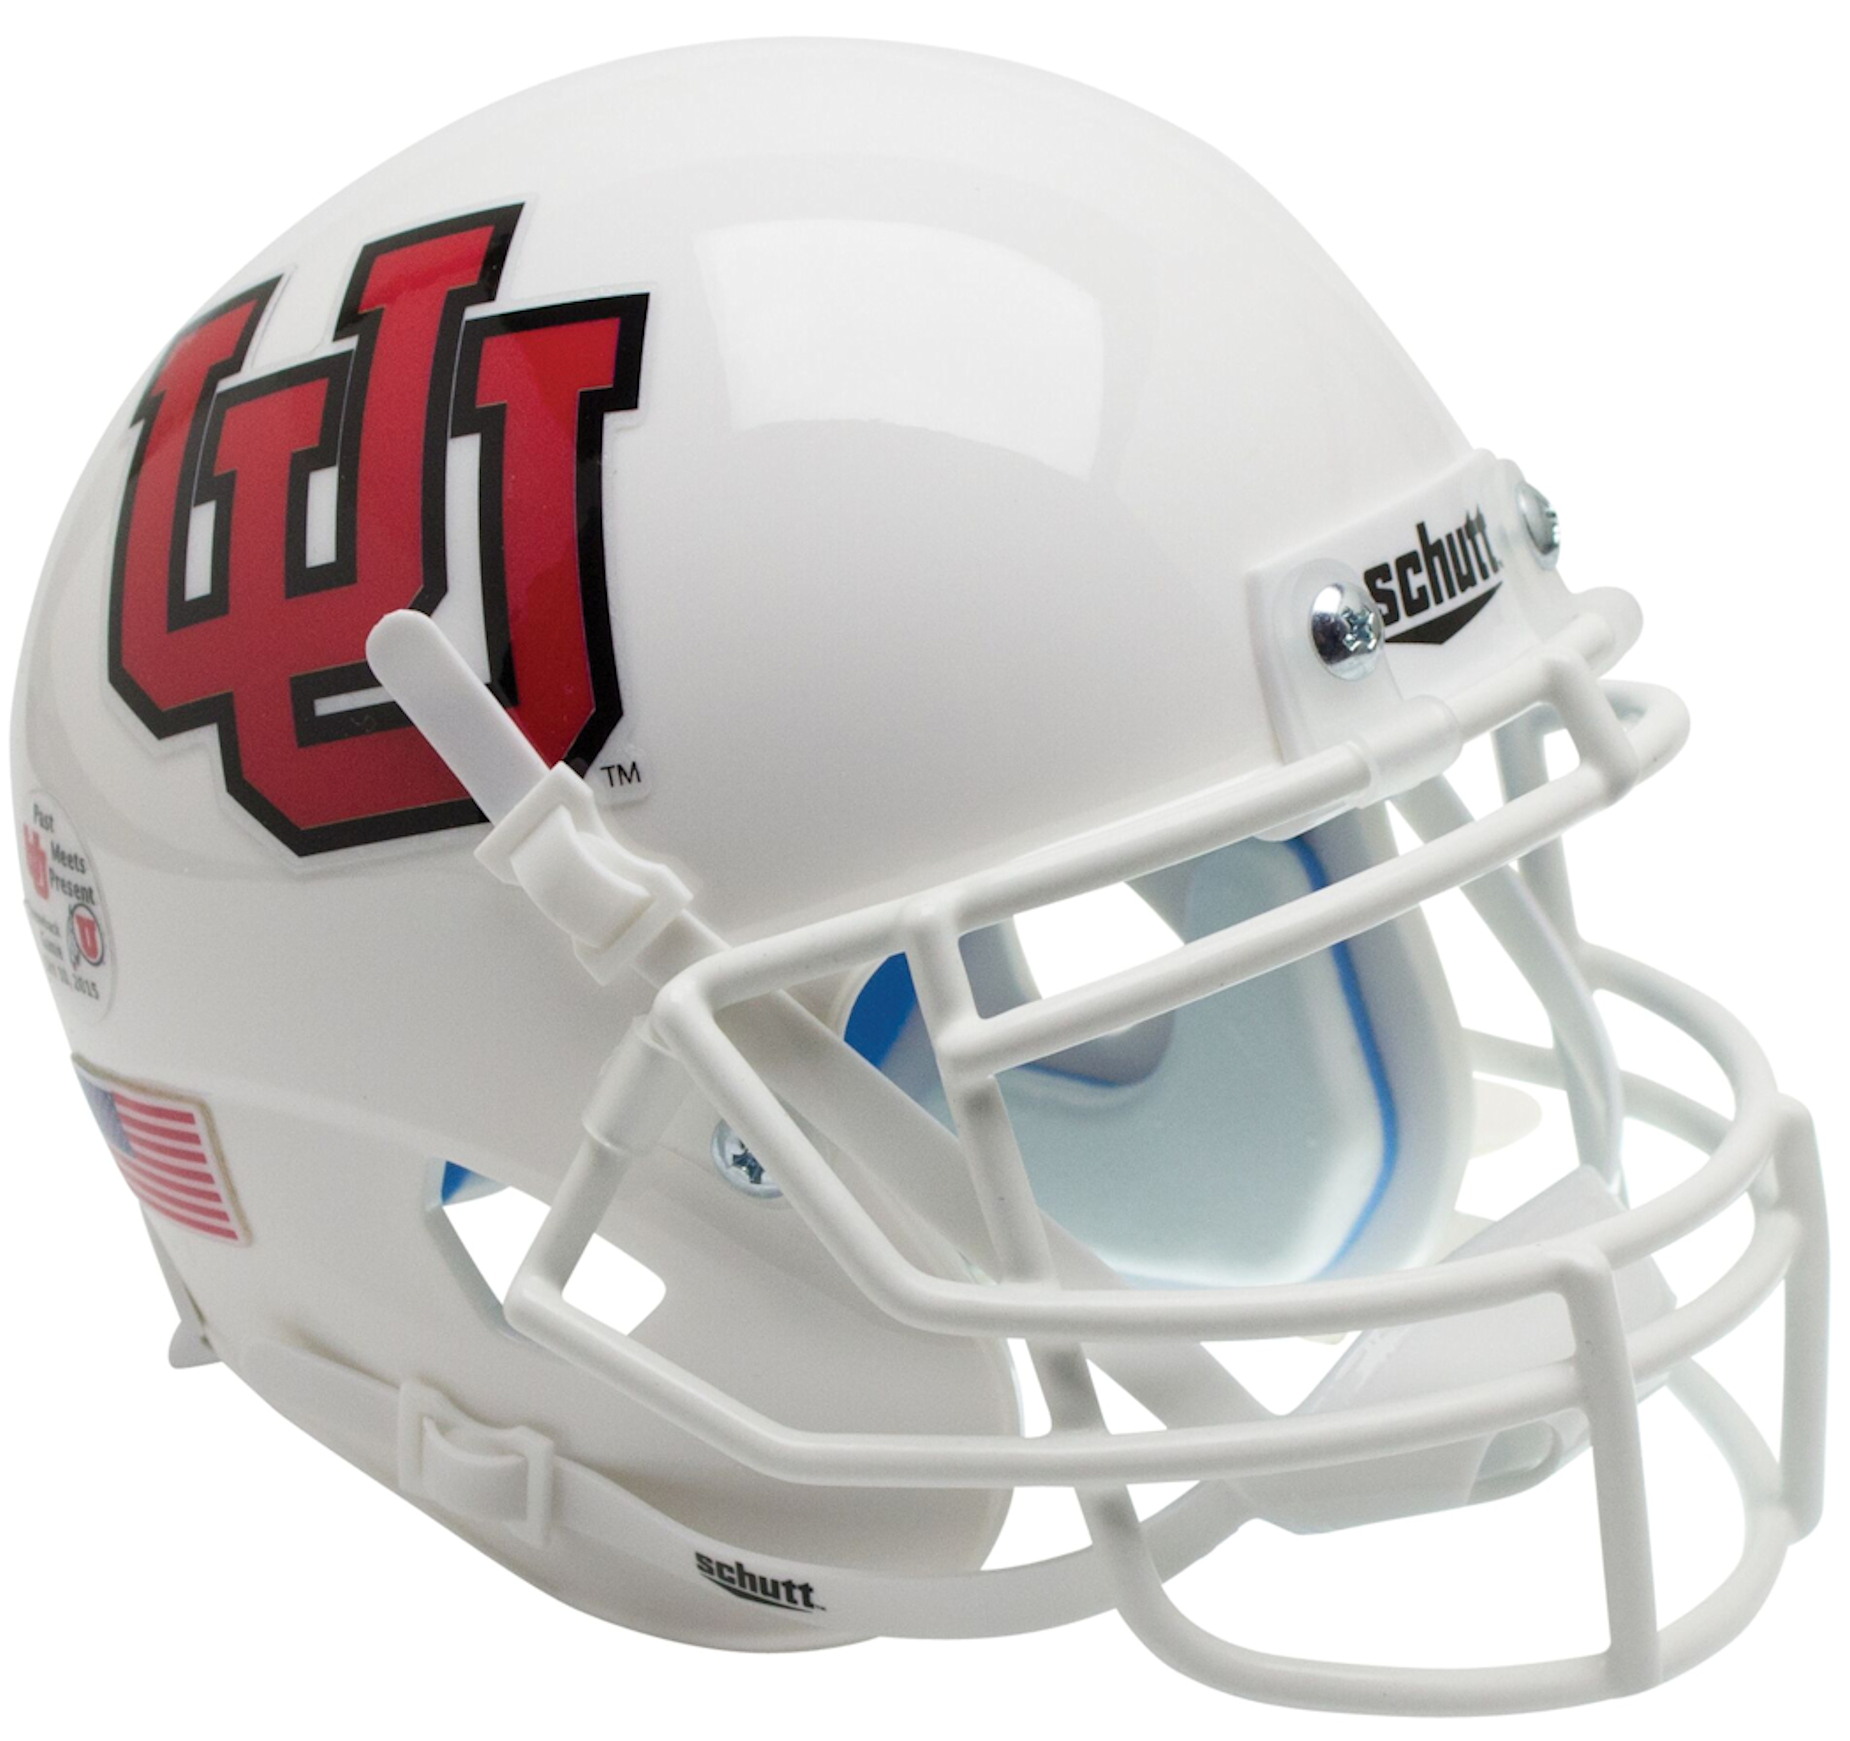 Utah Utes Authentic College XP Football Helmet Schutt <B>White UU White Mask<B>